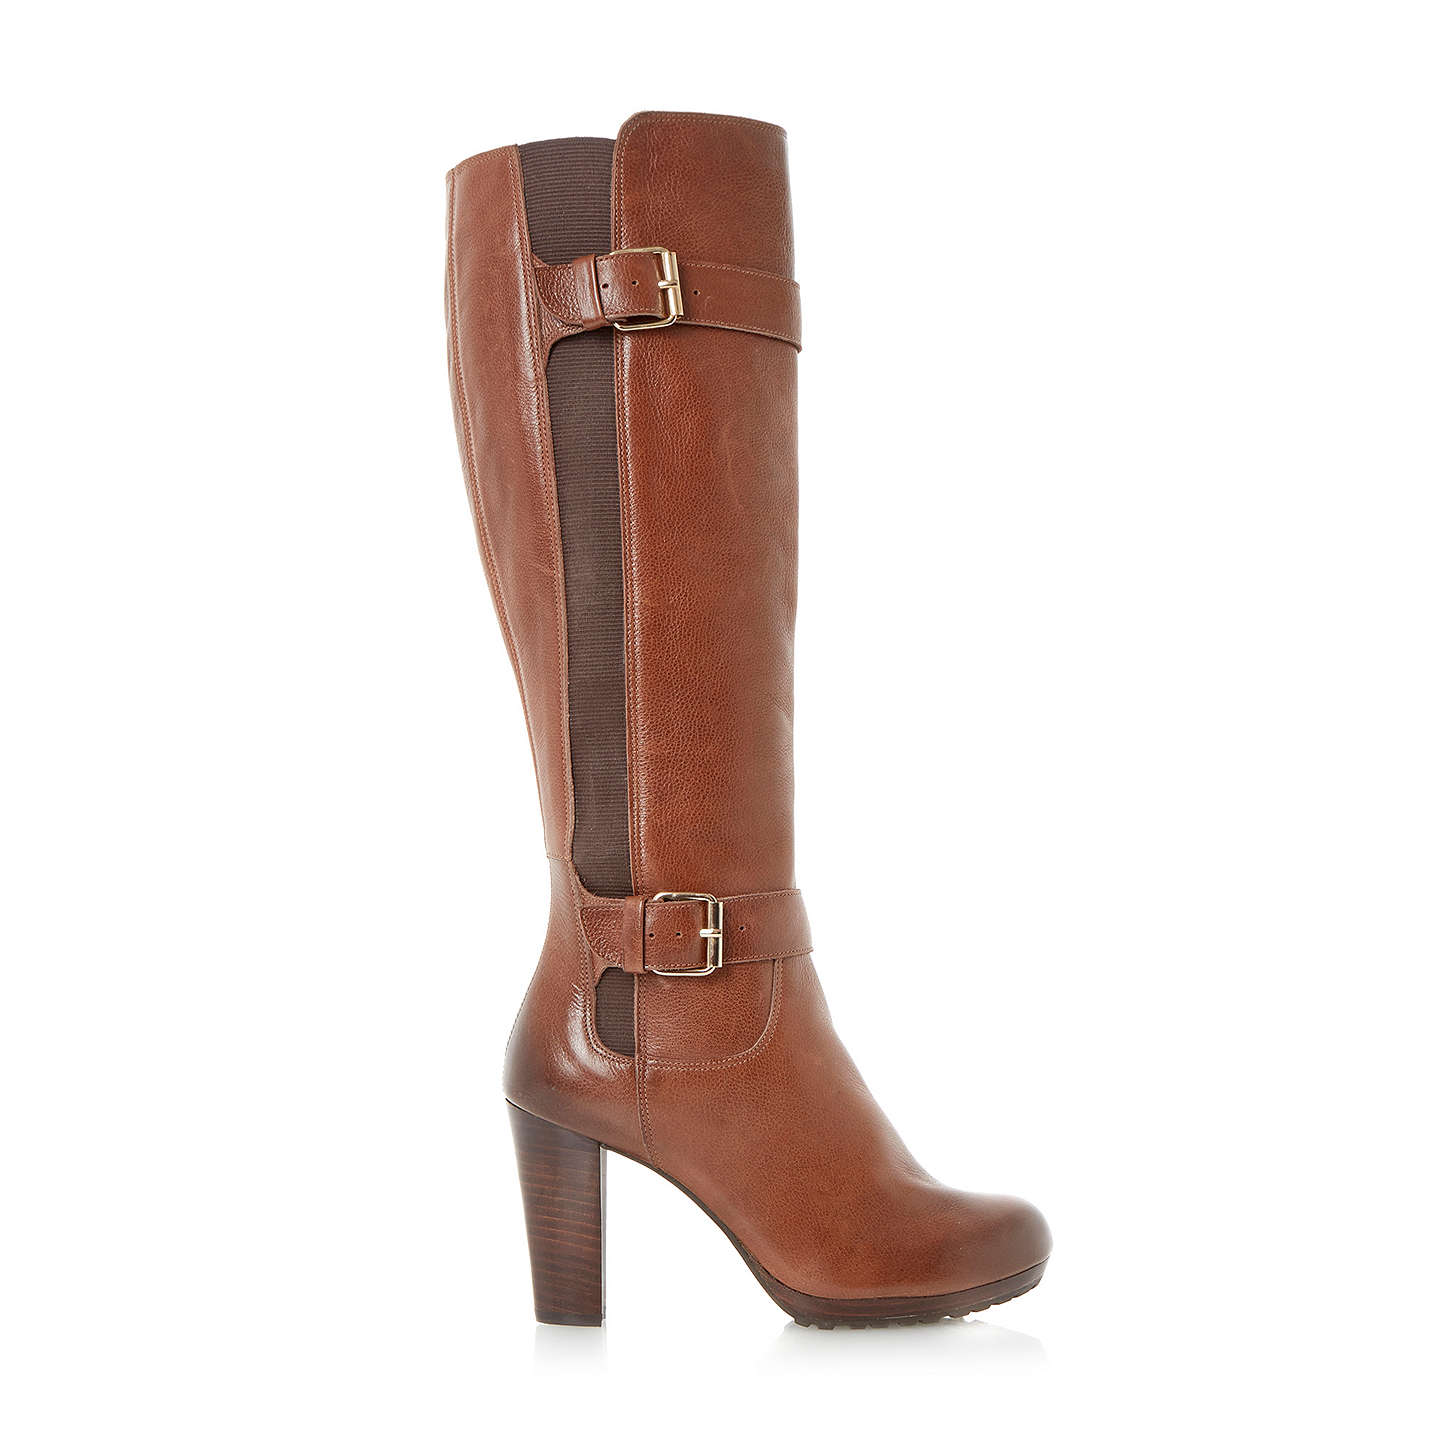 BuyDune Social Knee-High Leather Buckle Detail Boots, Tan, 3 Online at johnlewis.com